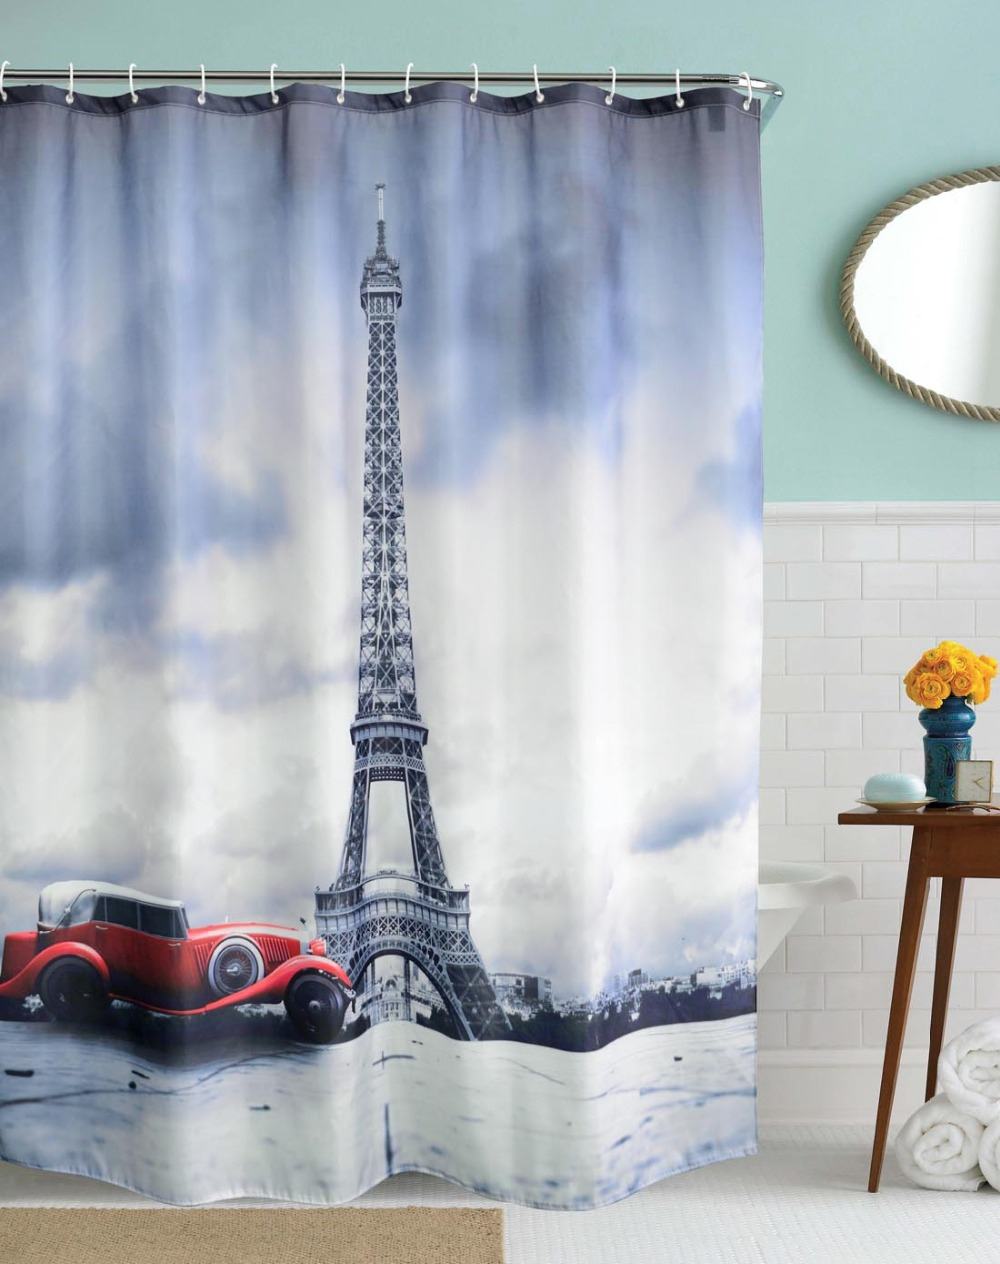 Dark knight shower curtain - 3d Famous City Landmark Vintage Car Eiffel Tower Waterproof Shower Curtains Polyester Fabric Curtains For Bathroom